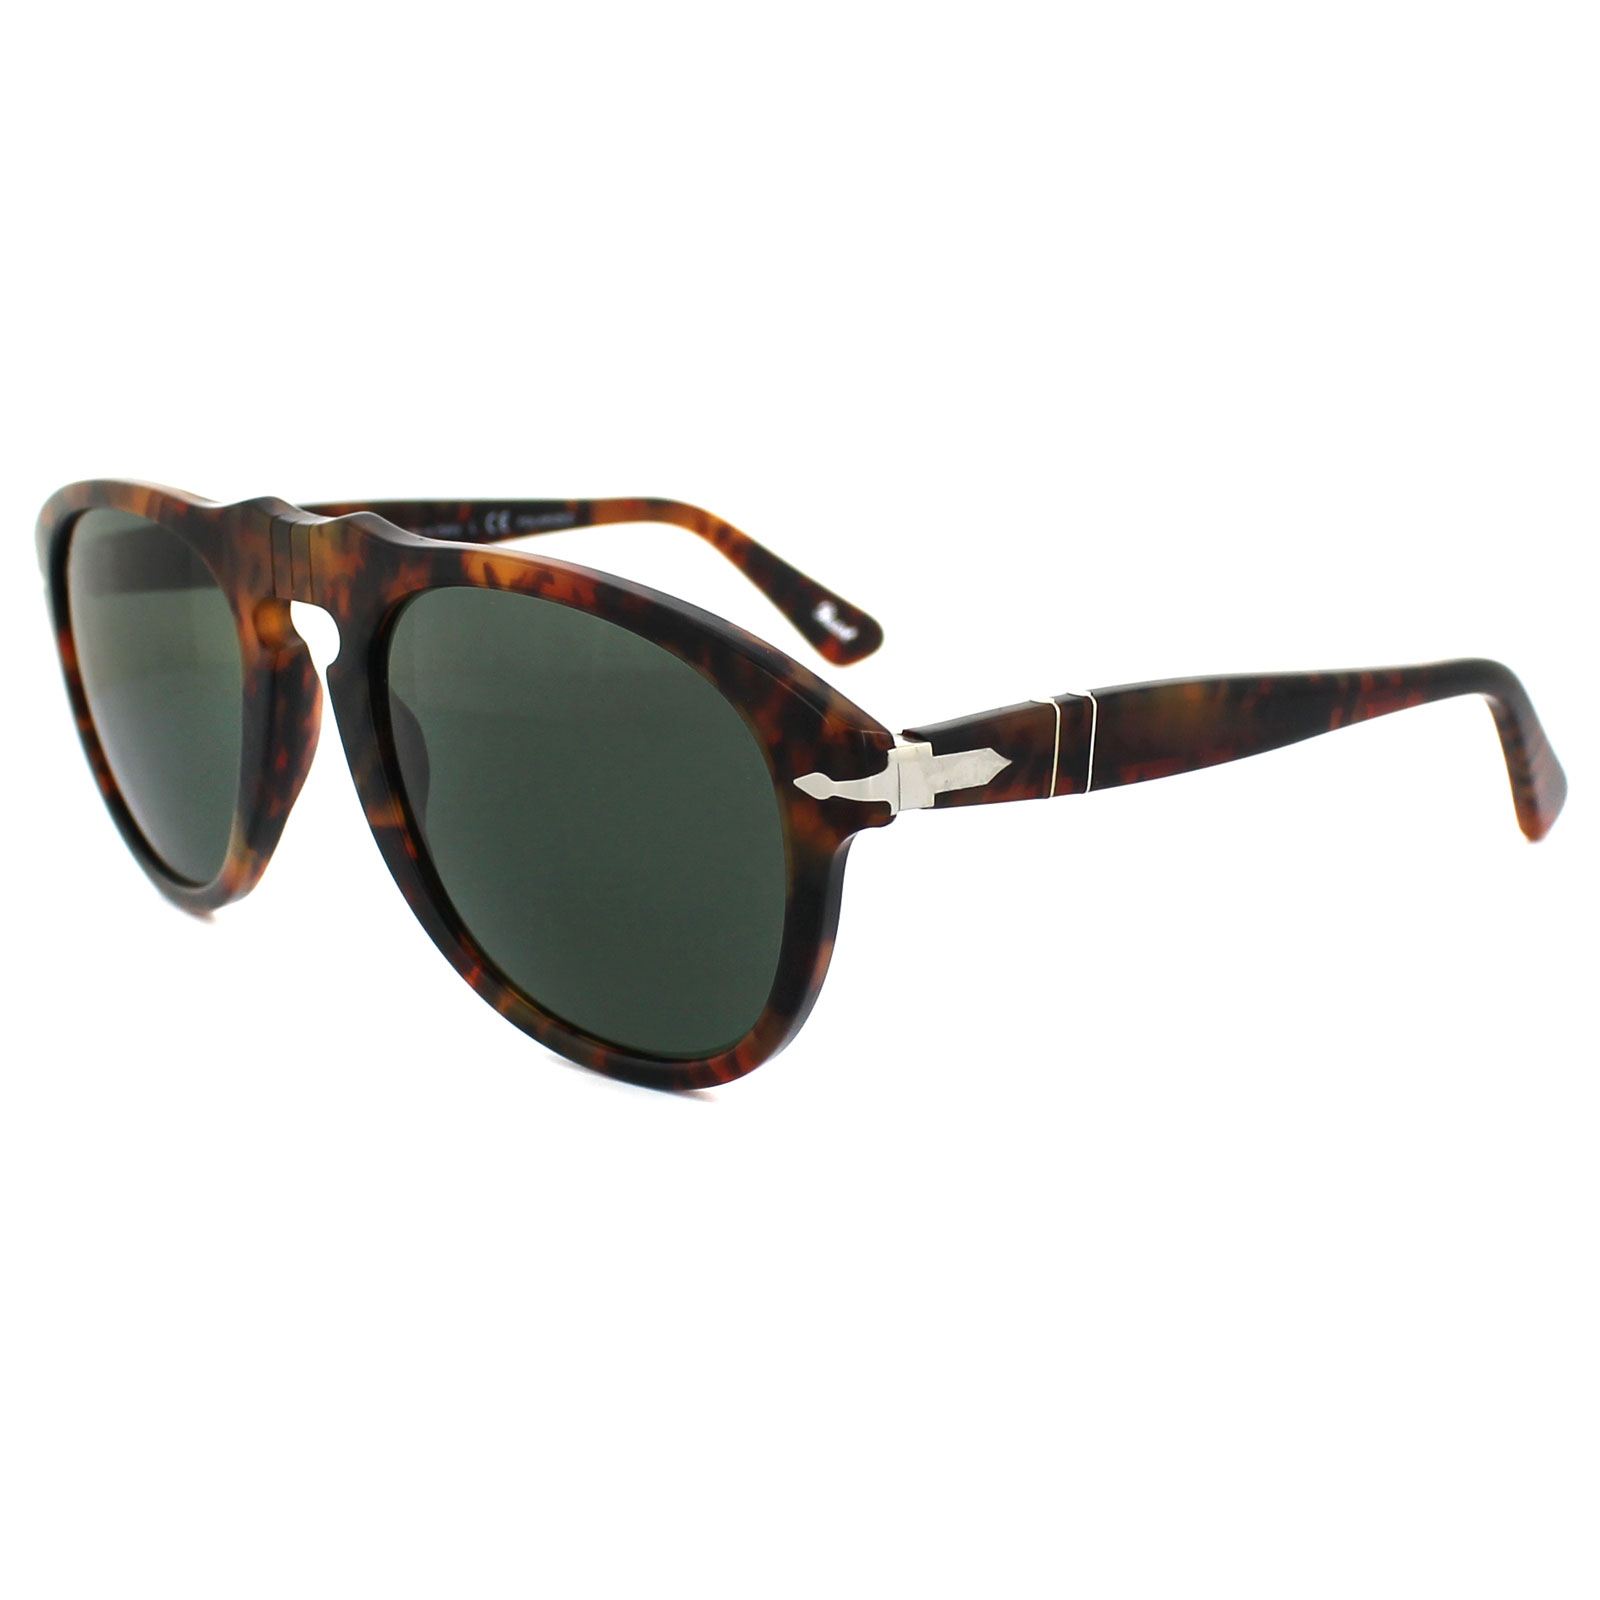 0d6cf138e3 Cheap Persol 649 Sunglasses - Discounted Sunglasses